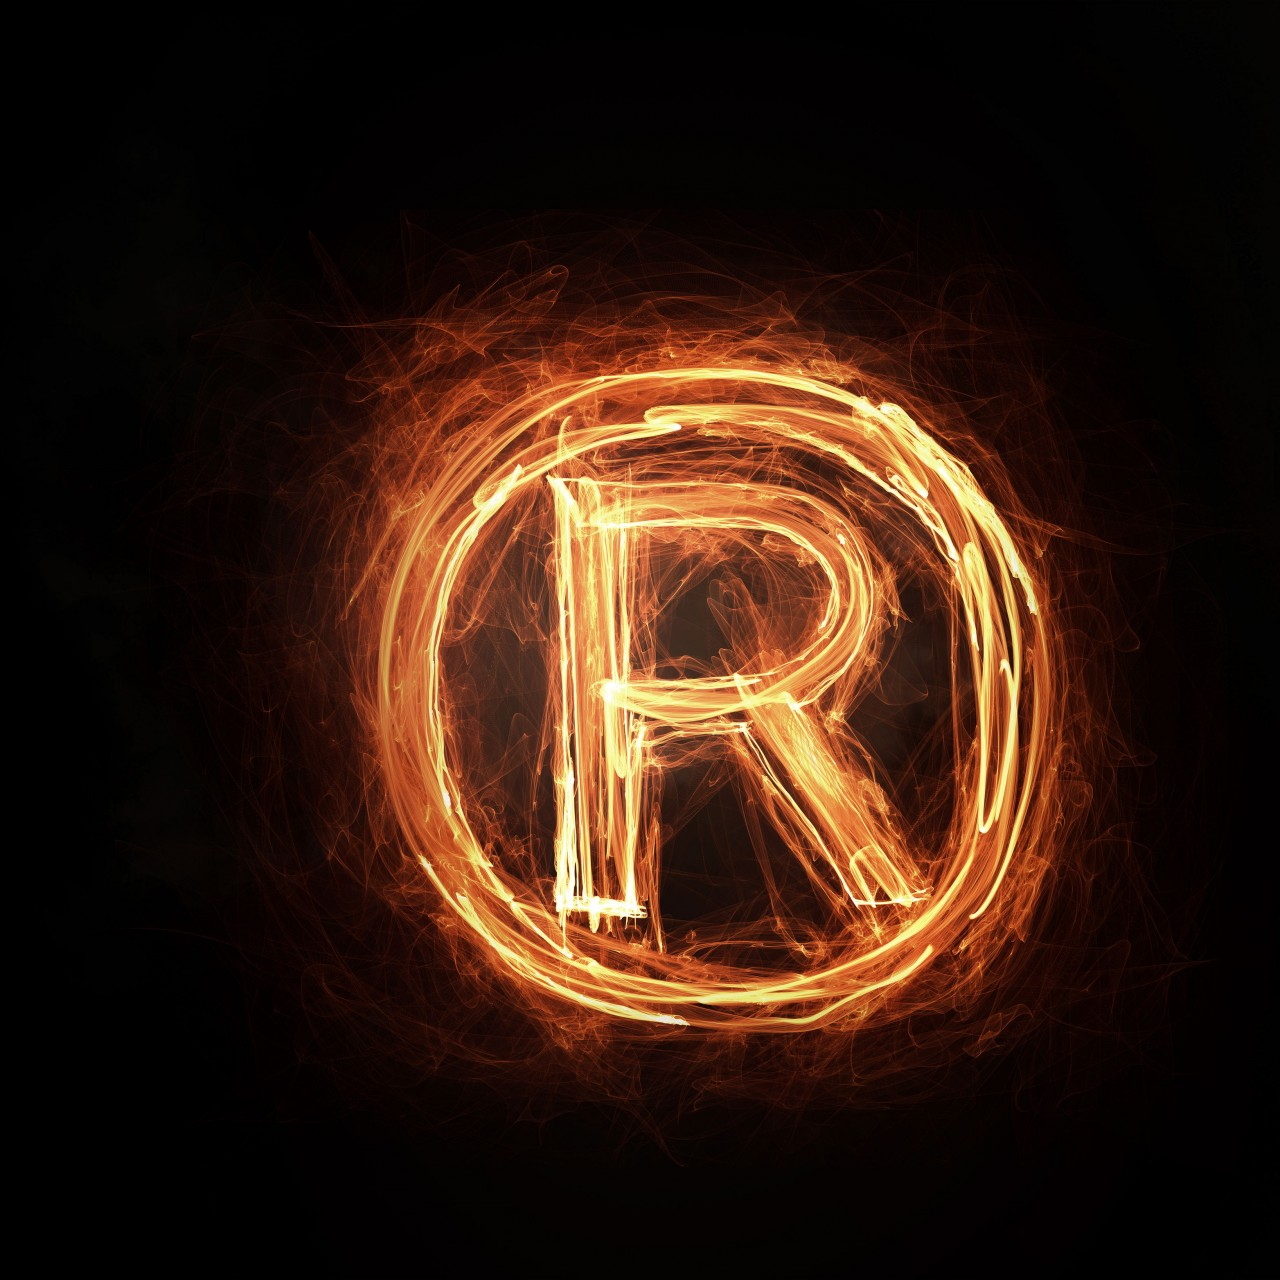 Does the First Amendment Guarantee the Right